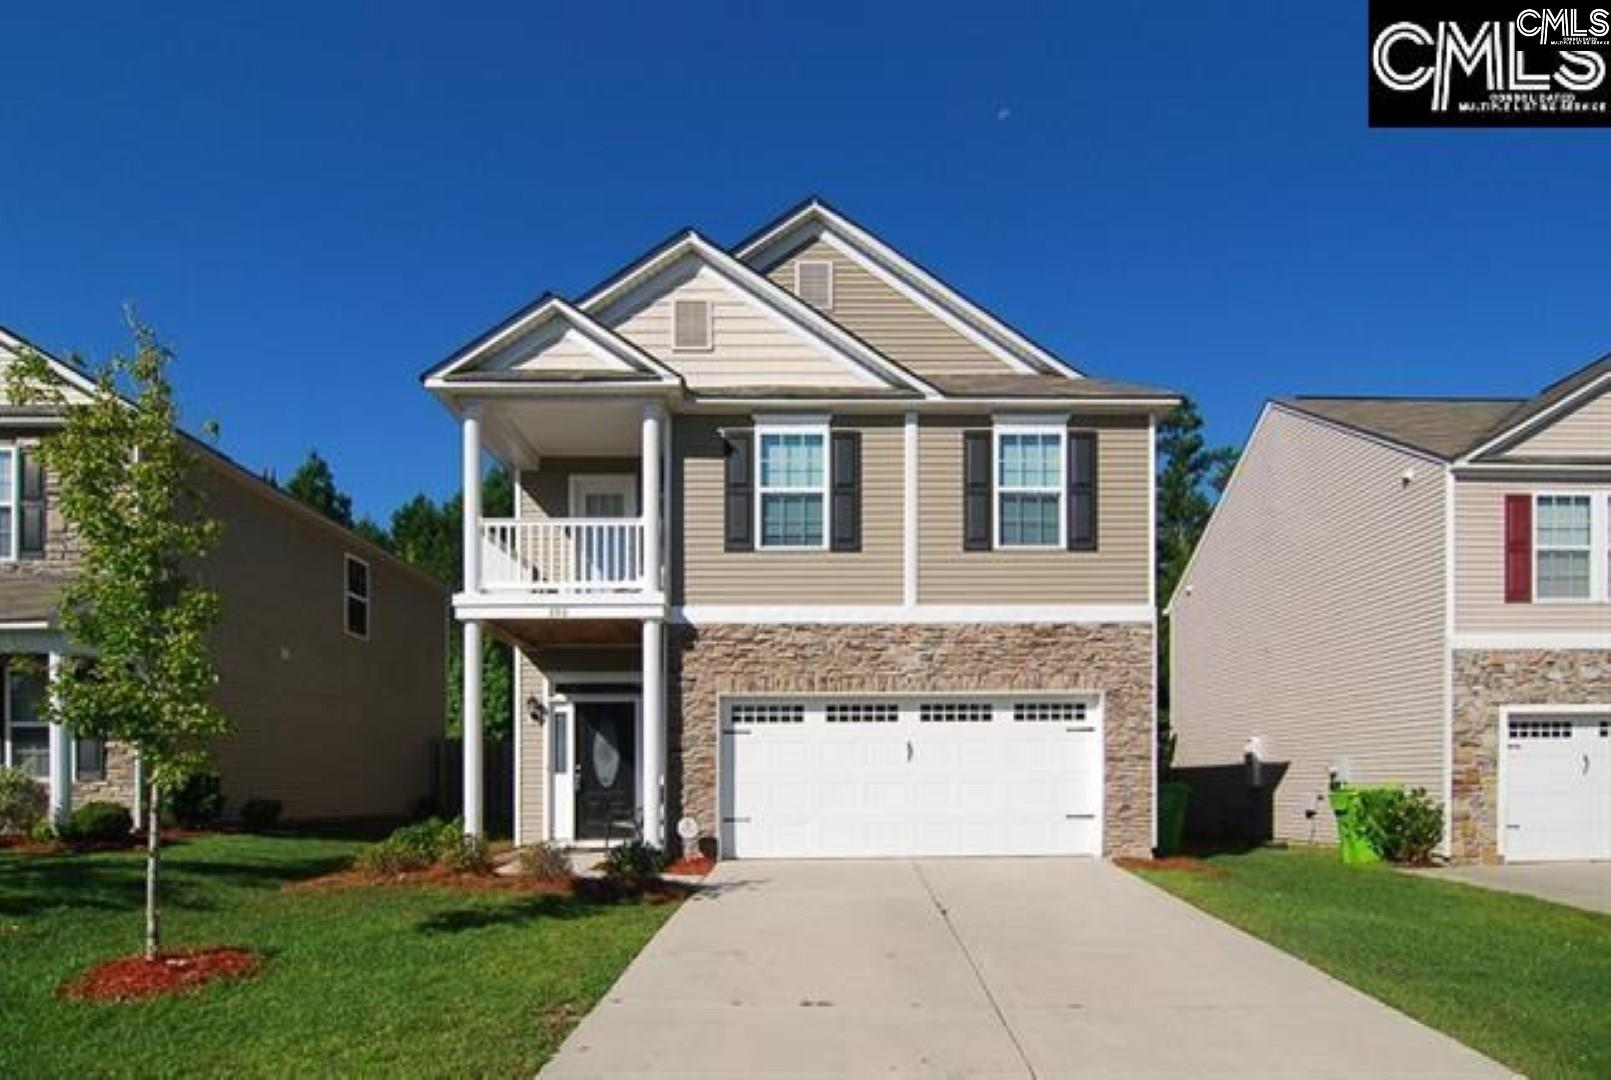 392 Longfellows Elgin, SC 29045